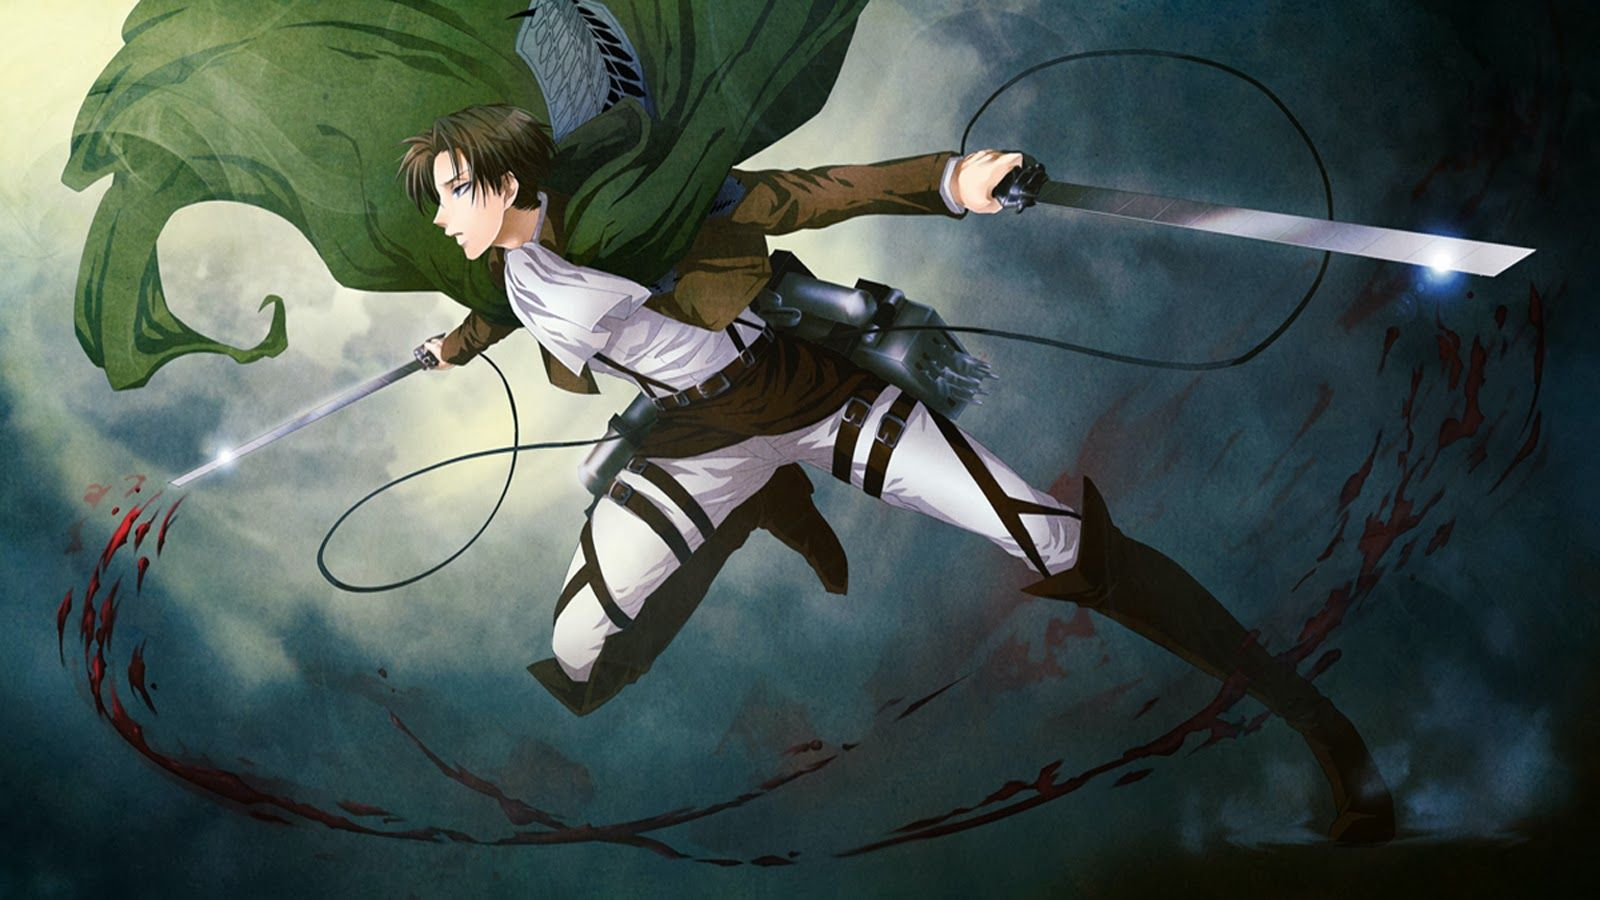 Levi Attack On Titan Wallpapers Top Free Levi Attack On Titan Backgrounds Wallpaperaccess